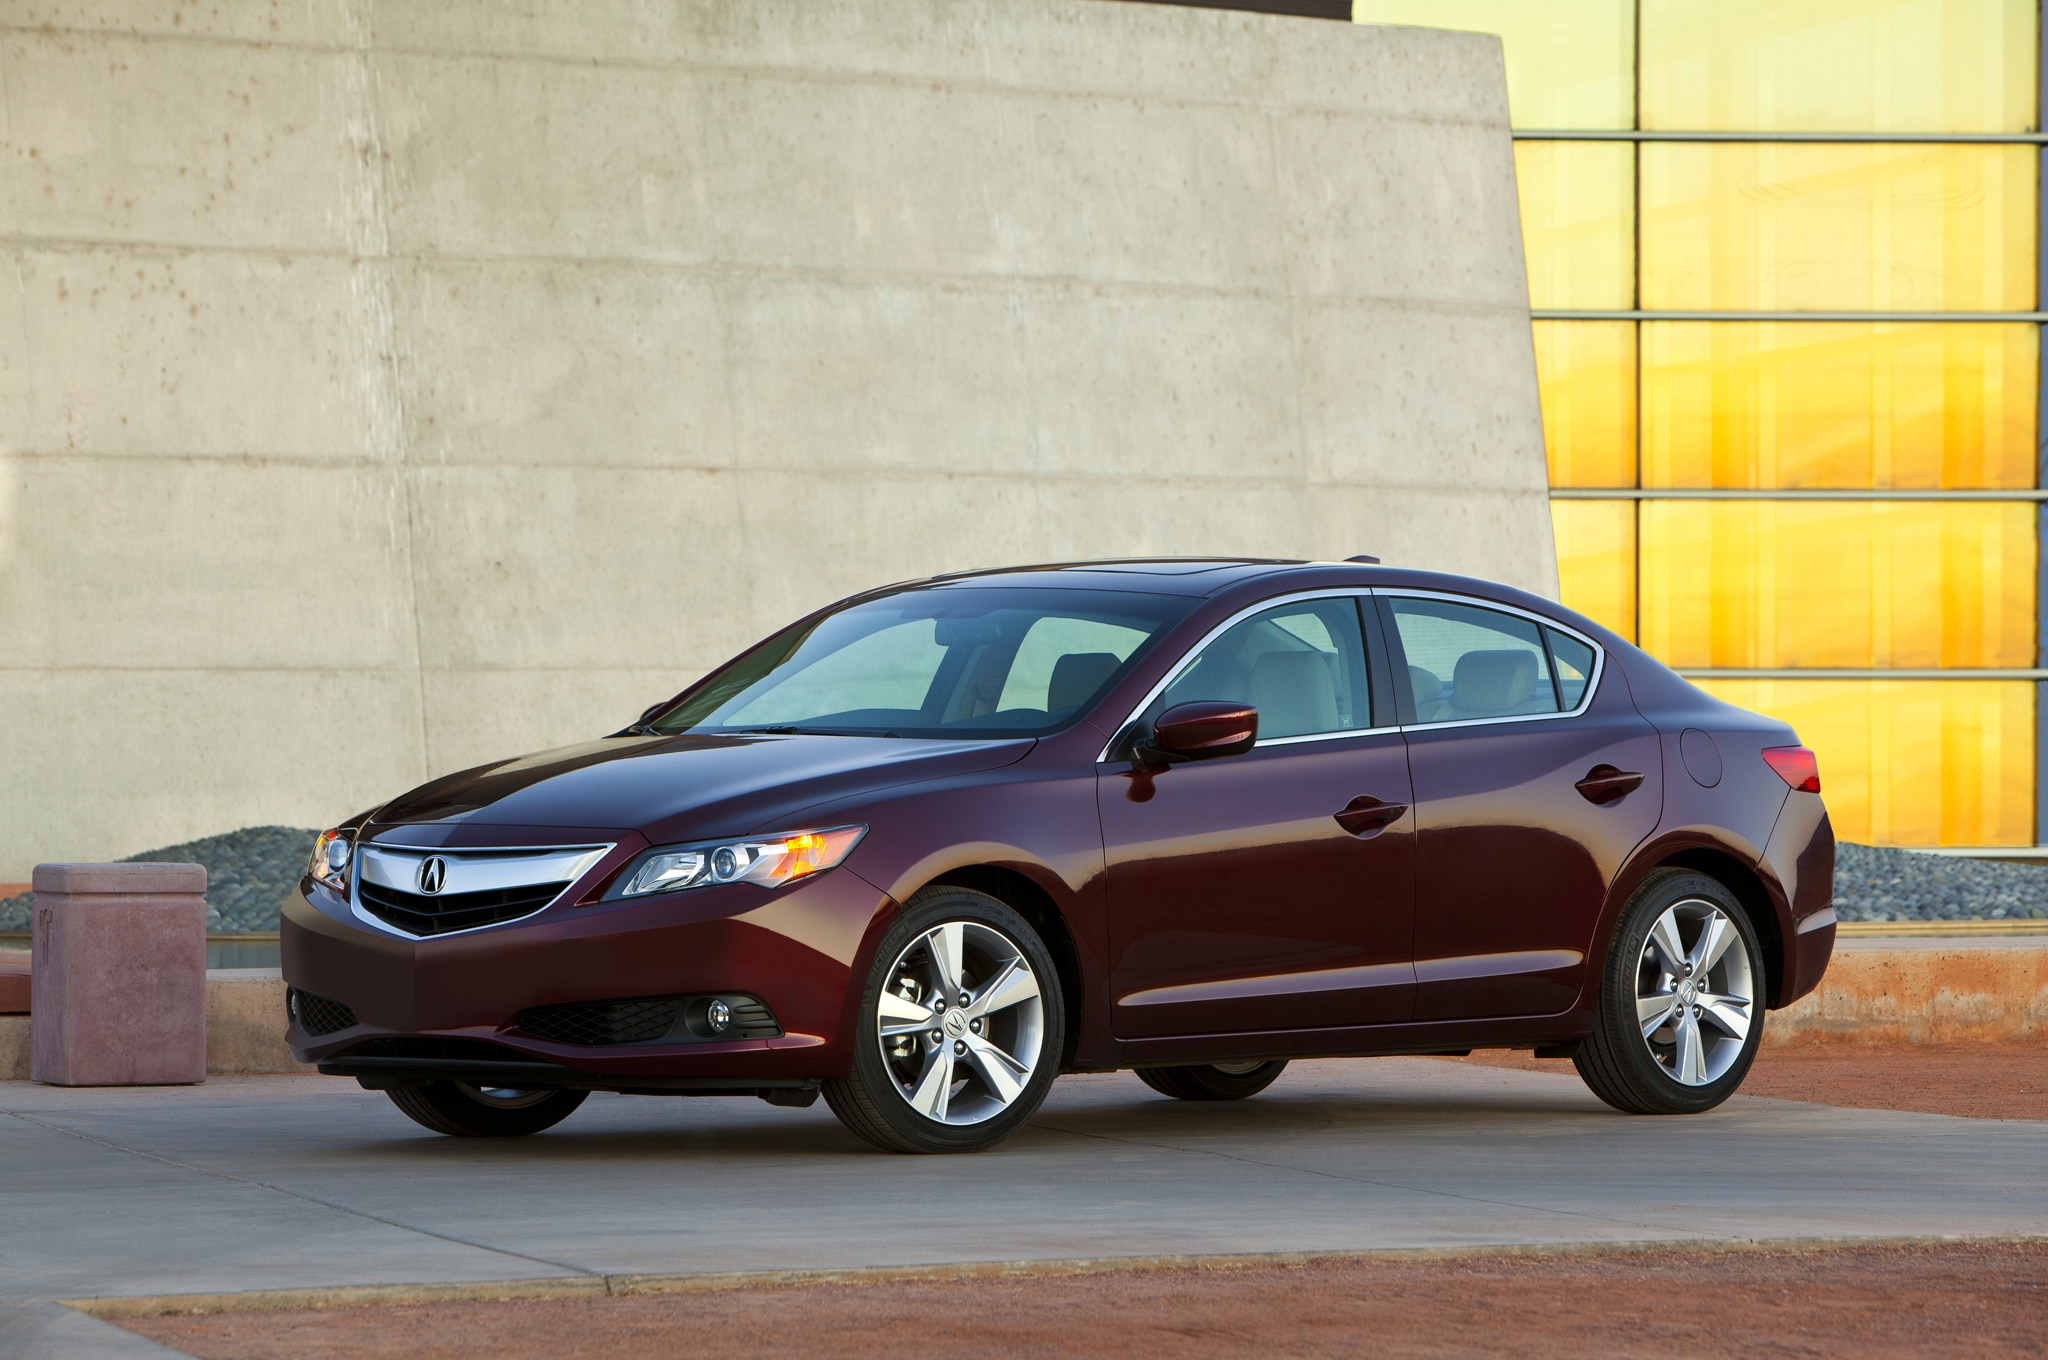 2015 acura ilx 2 4l review. Black Bedroom Furniture Sets. Home Design Ideas